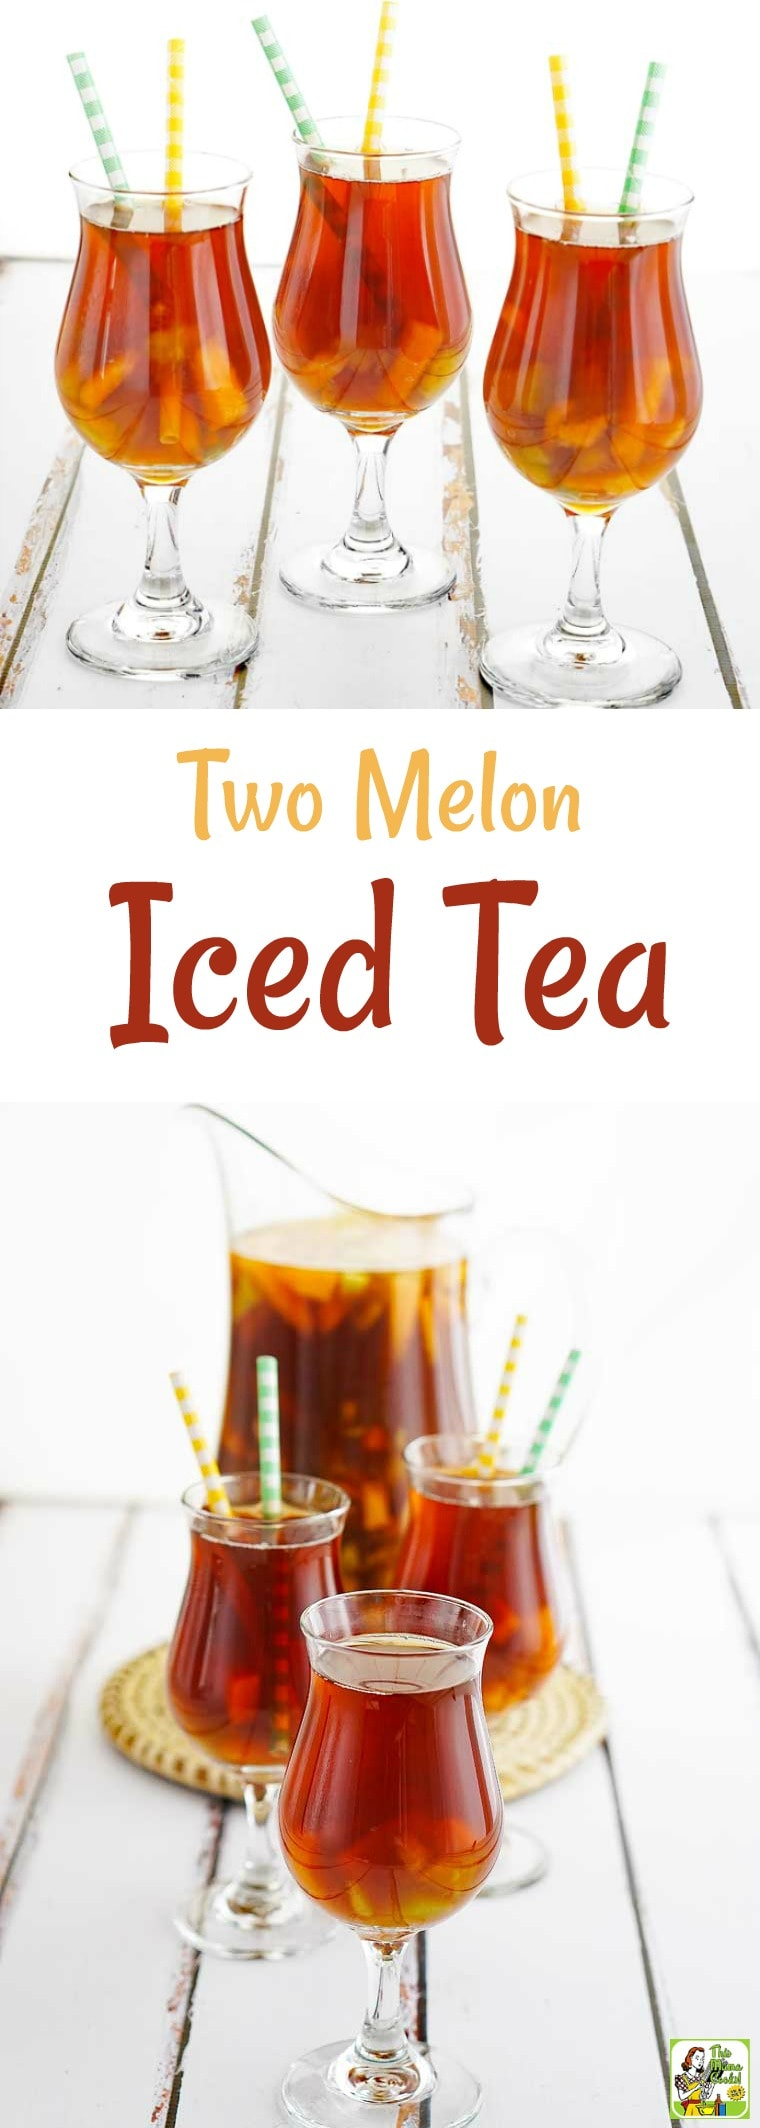 Looking for a refreshing low-calorie ice tea recipe? Try this Two Melon Iced Tea recipe. Fruit tea is a healthy alternative to drinking sodas. This fruit tea recipe is super easy to make! #icetea #icedtea #fruittea #lowcalorie #healthydrinks